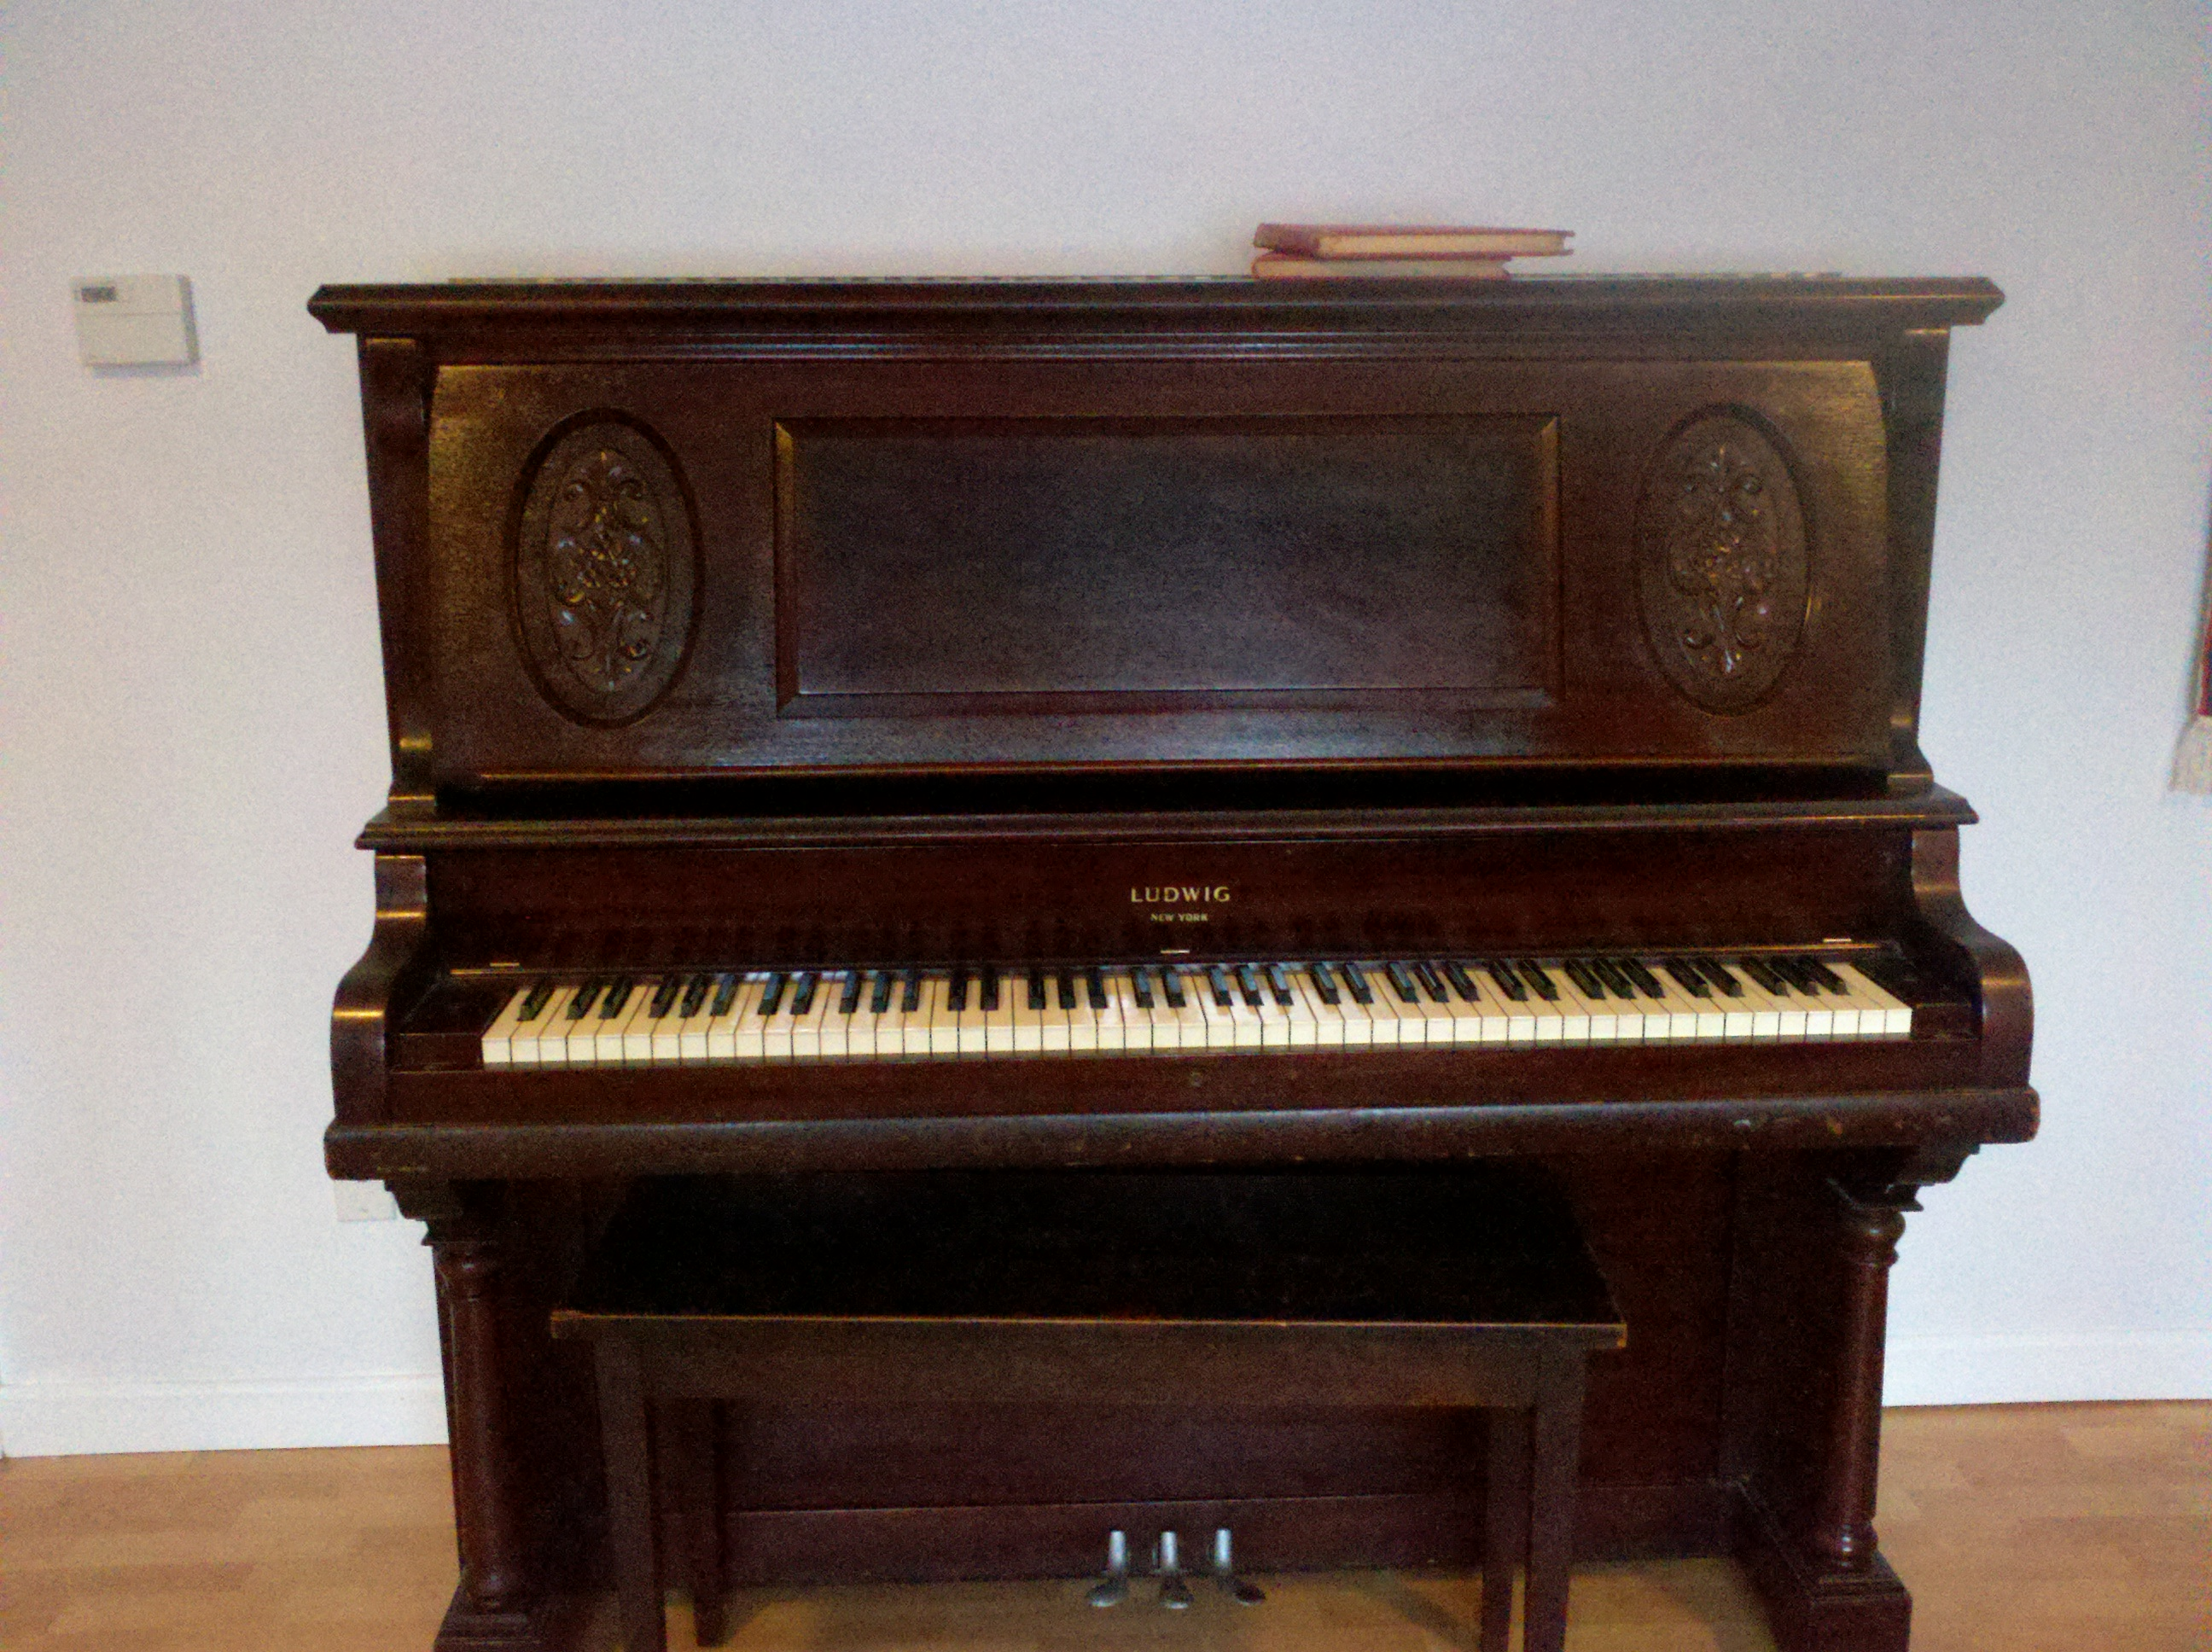 What would a Ludwig & Co upright piano, #94818 be worth?